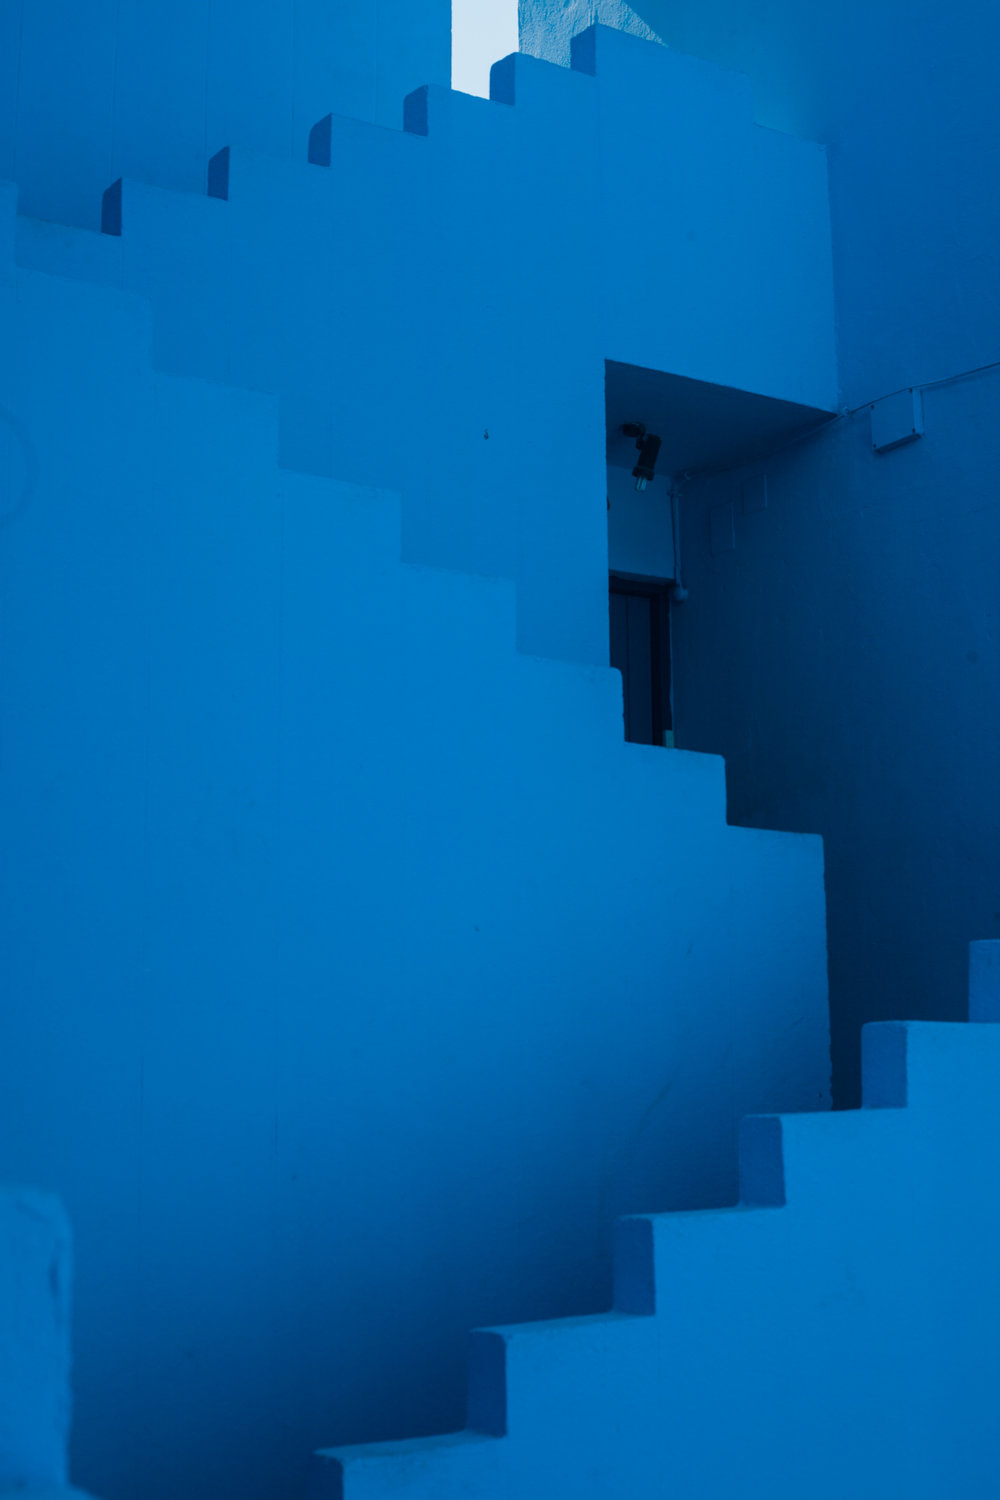 La Muralla Roja Workhouse Collective